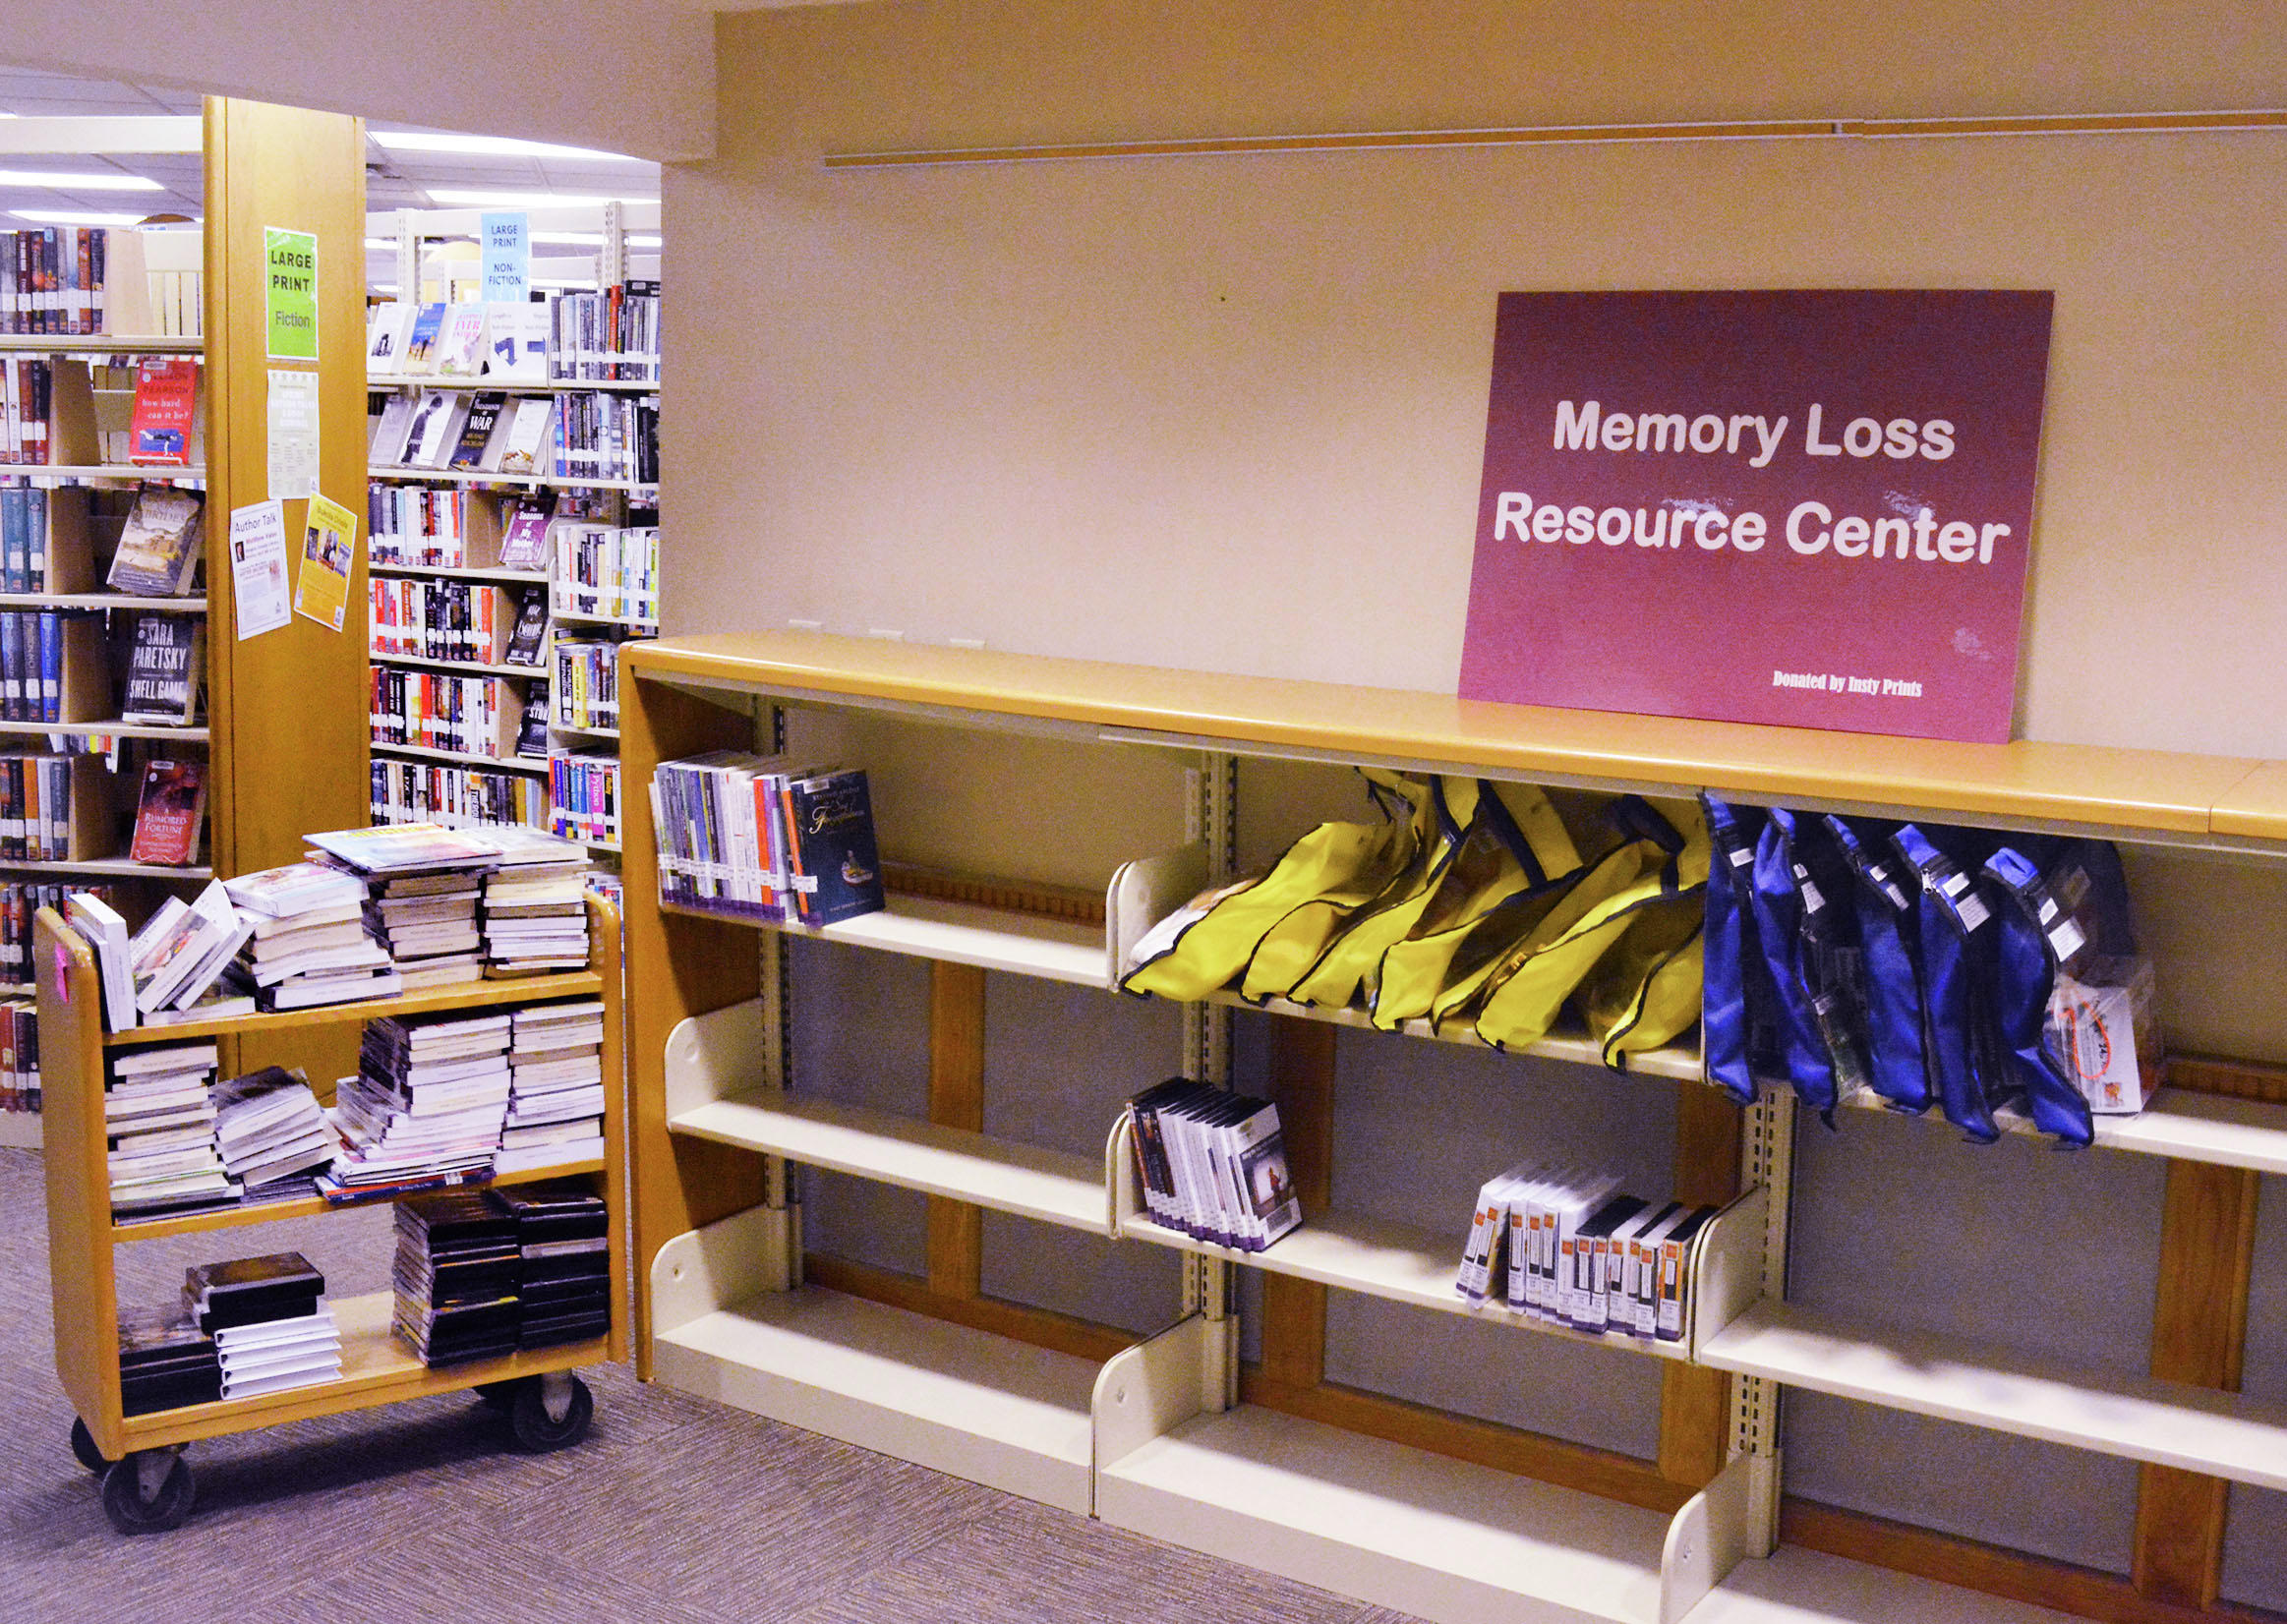 Douglas County Library was in the process last week of setting up a Memory Loss Resource Center. (Ari Leuthner / Echo Press)